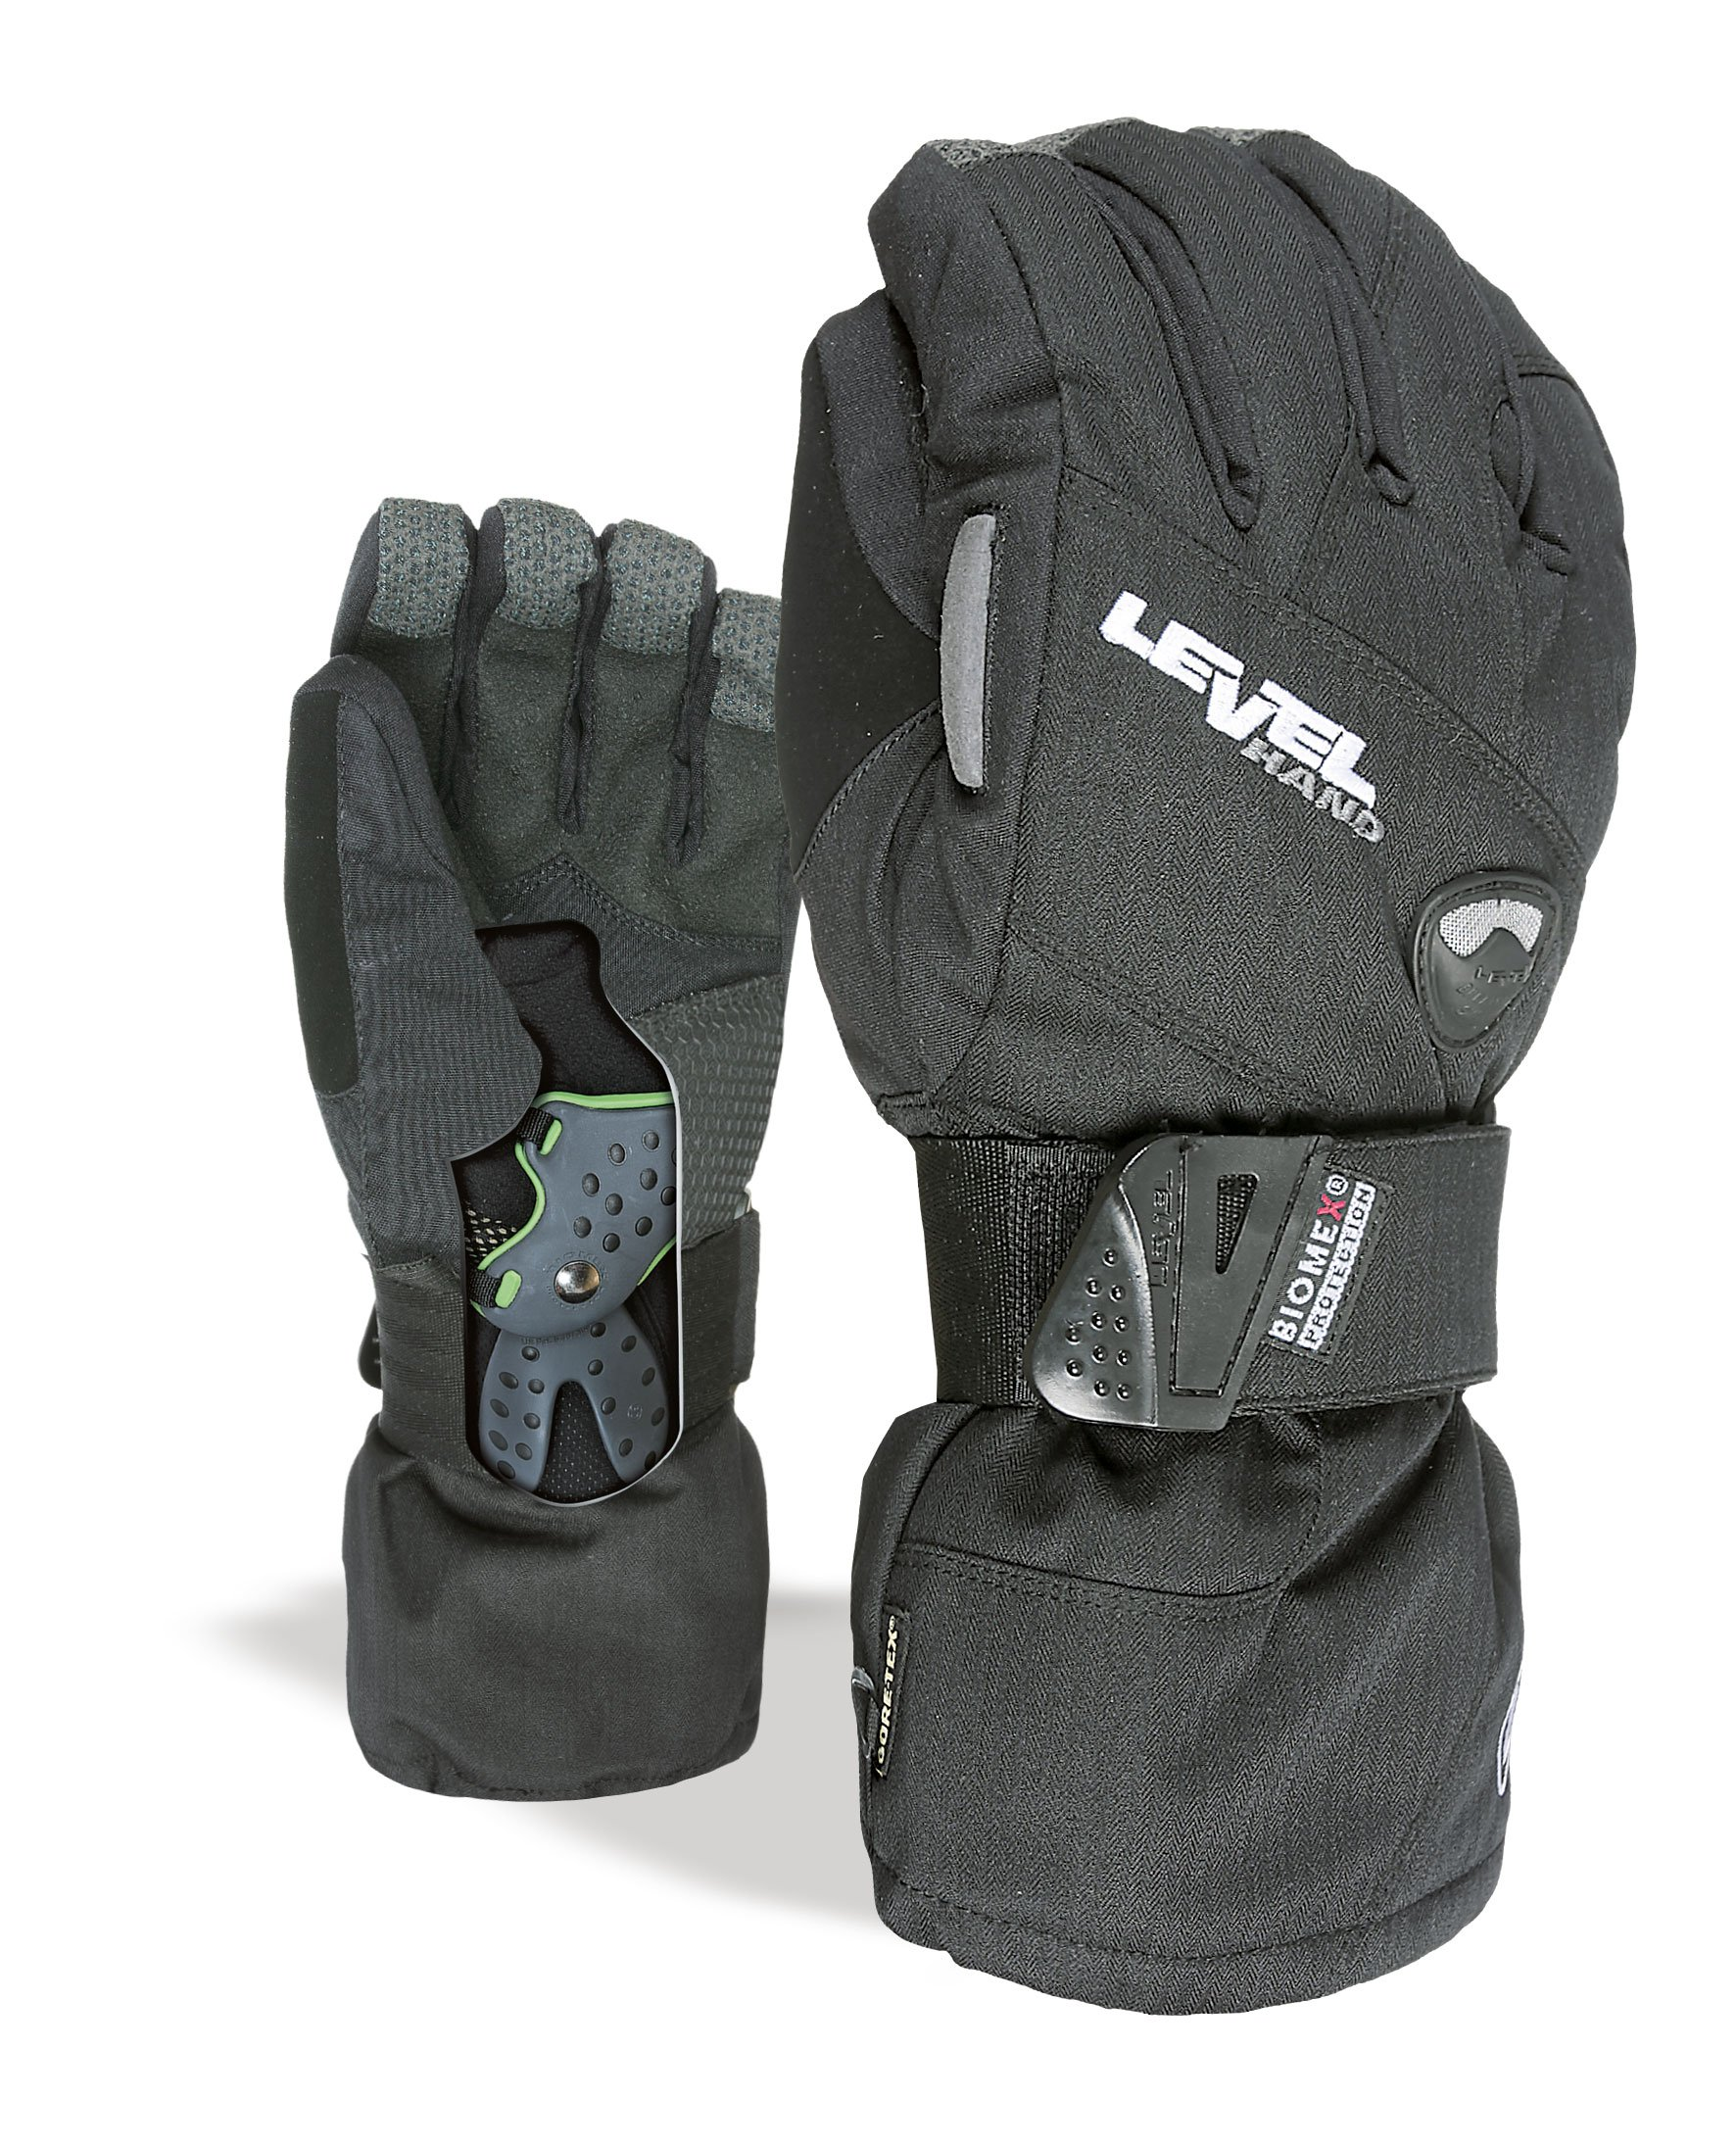 Level Half Pipe GTX Snowboard Protective Gloves with GoreTex Shell, BioMex Integrated Wrist Guards, ThermoPlus Liner (Black, Large (9.0in))